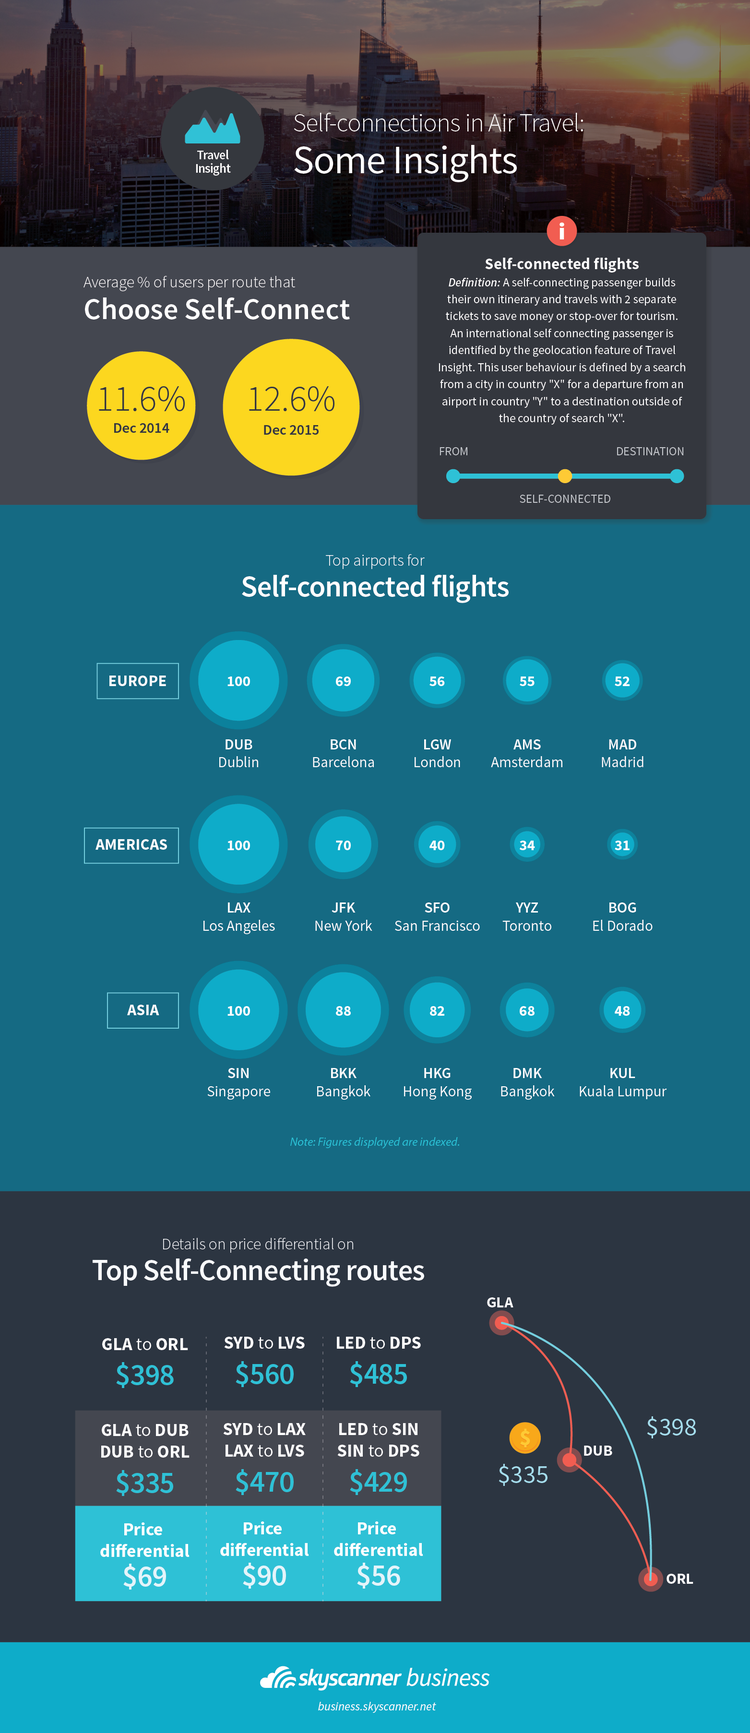 Self-connections in Air Travel Infographic by Skyscanner for Business